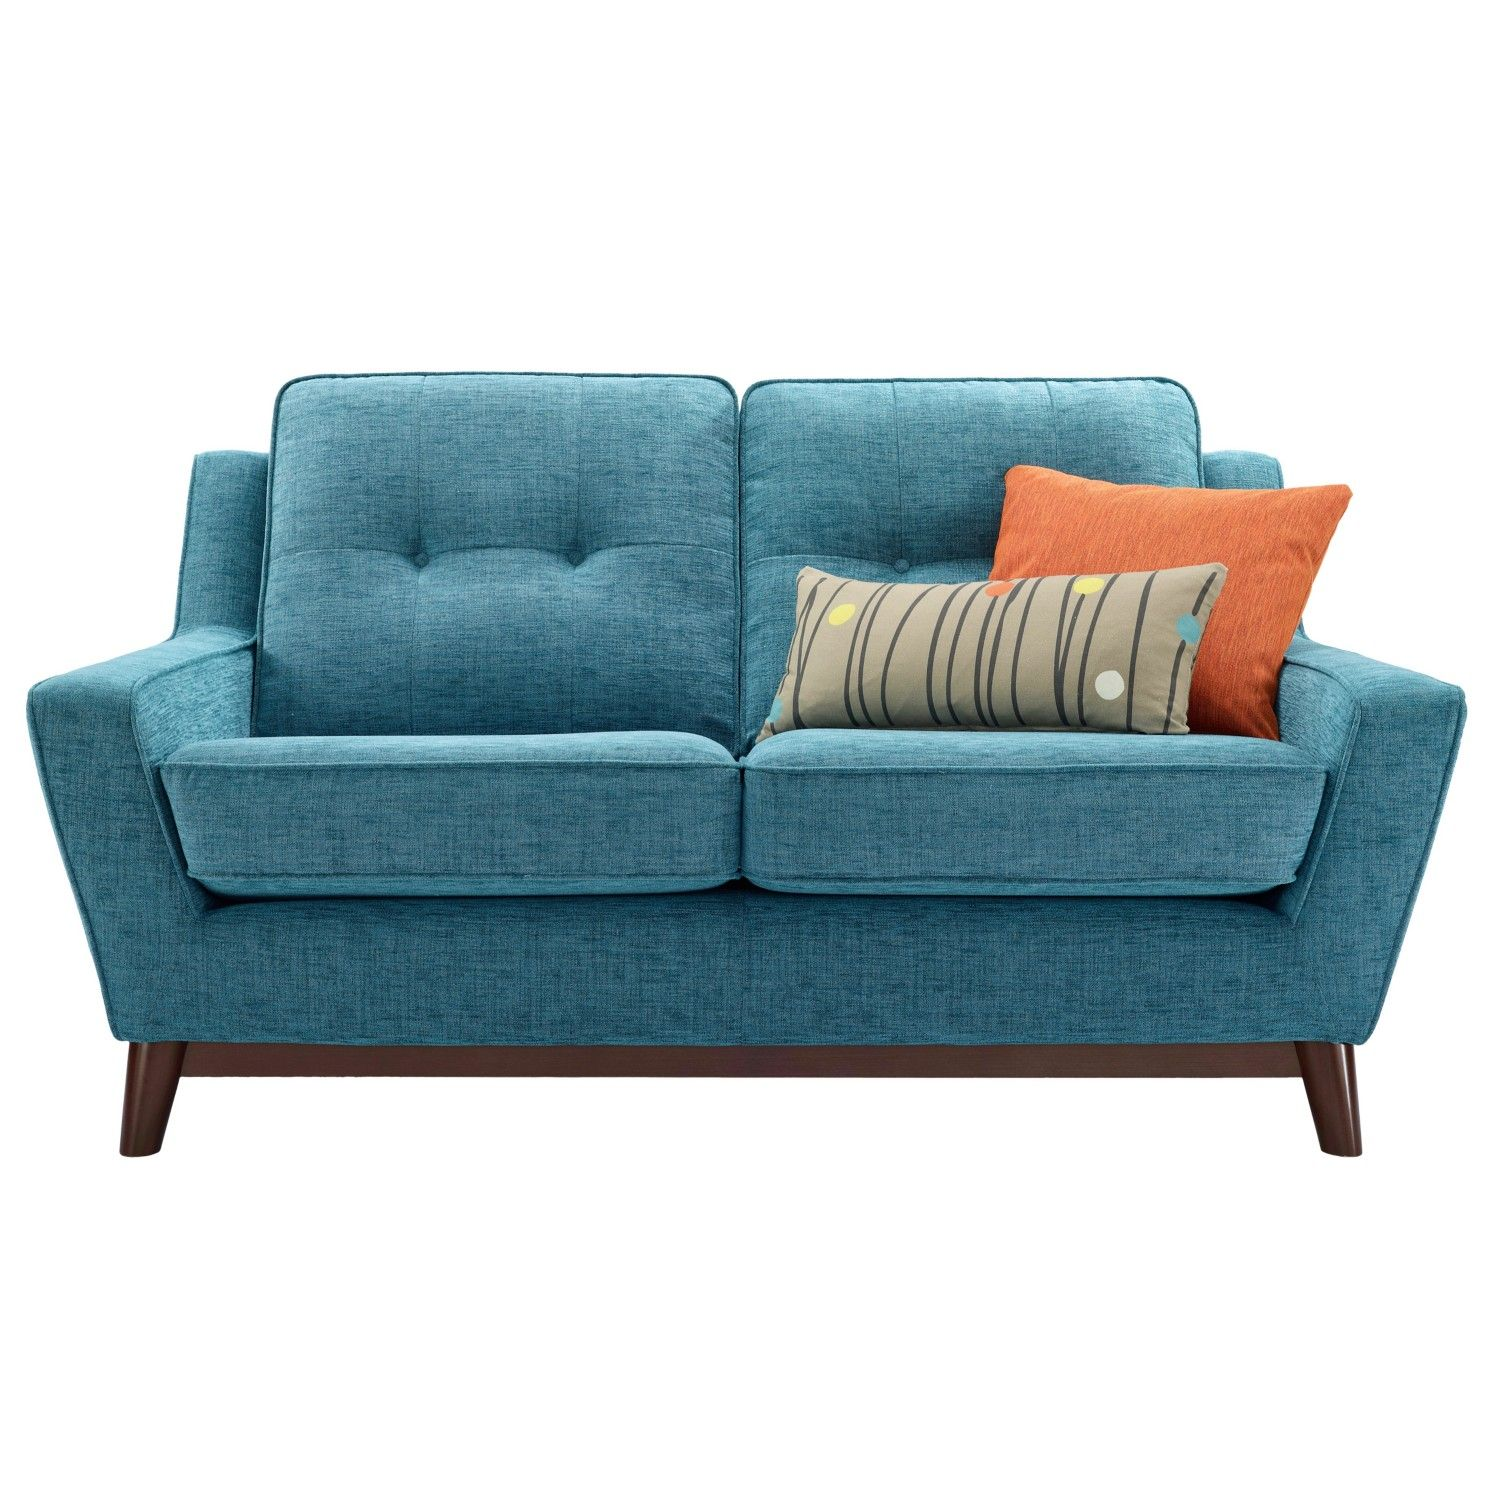 Amazing Cheap Small Sofa Decoration: Contemporary Blue Cheap Small ...